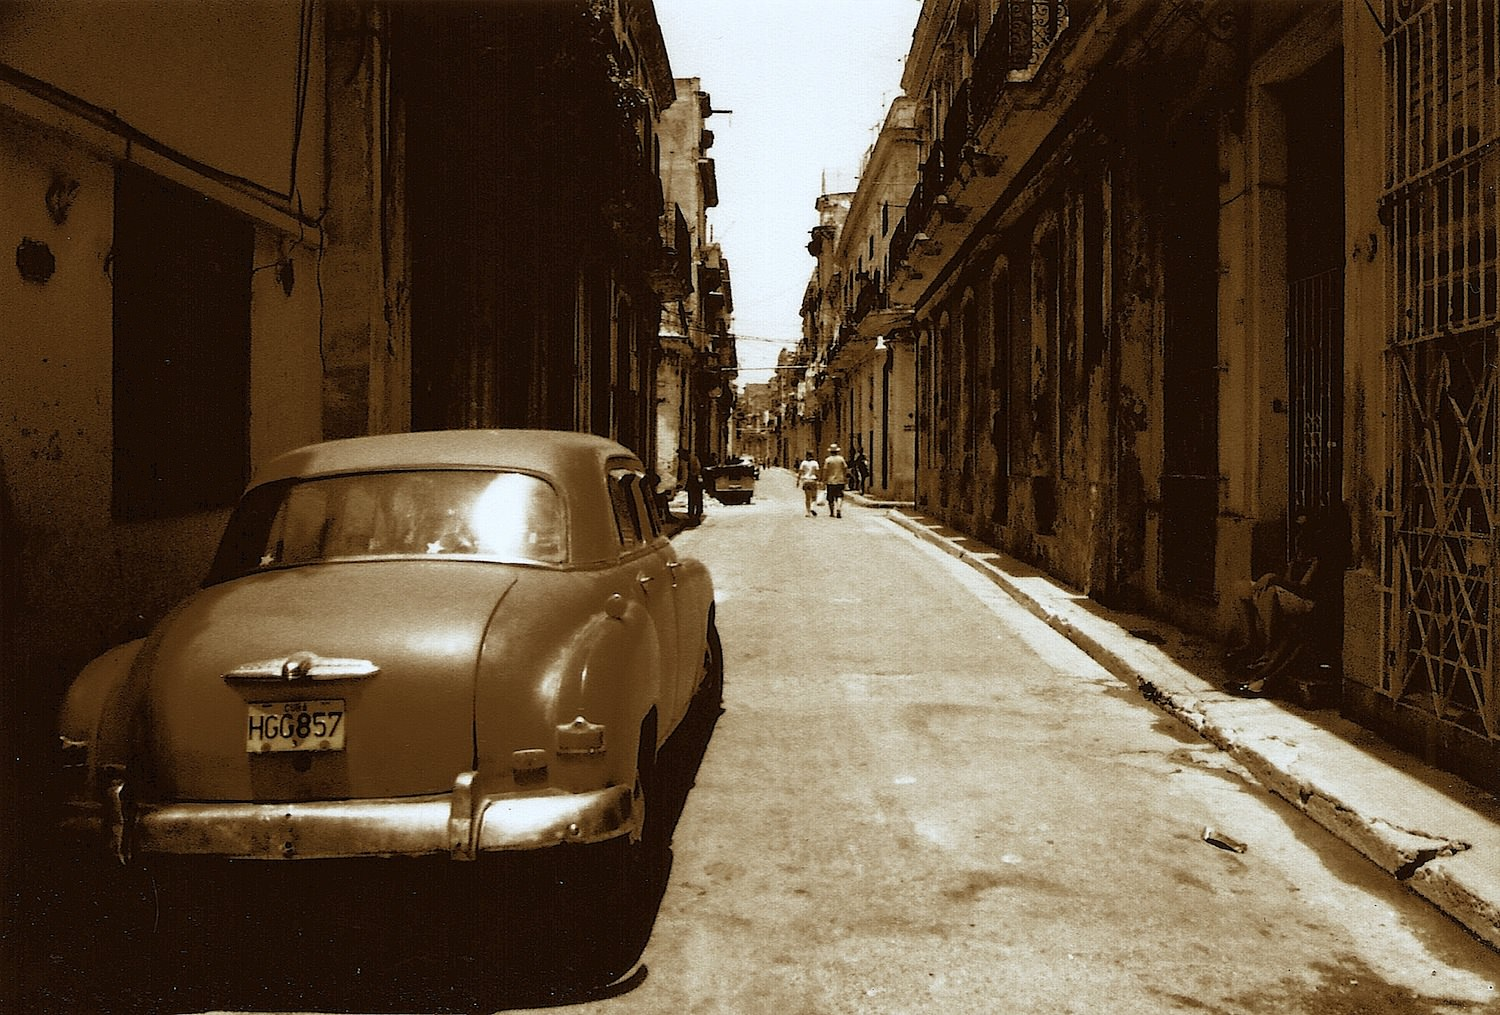 Cuba is often referred to as a 'failure', and without the support of the USSR in the 1970's, Fidel's regime may have dissolved far earlier. However, should the Western embargo not been enforced – and the country allowed to trade with its geographically closer neighbours – it is possible that Cuba, as a state planned economy, may have actually succeeded.